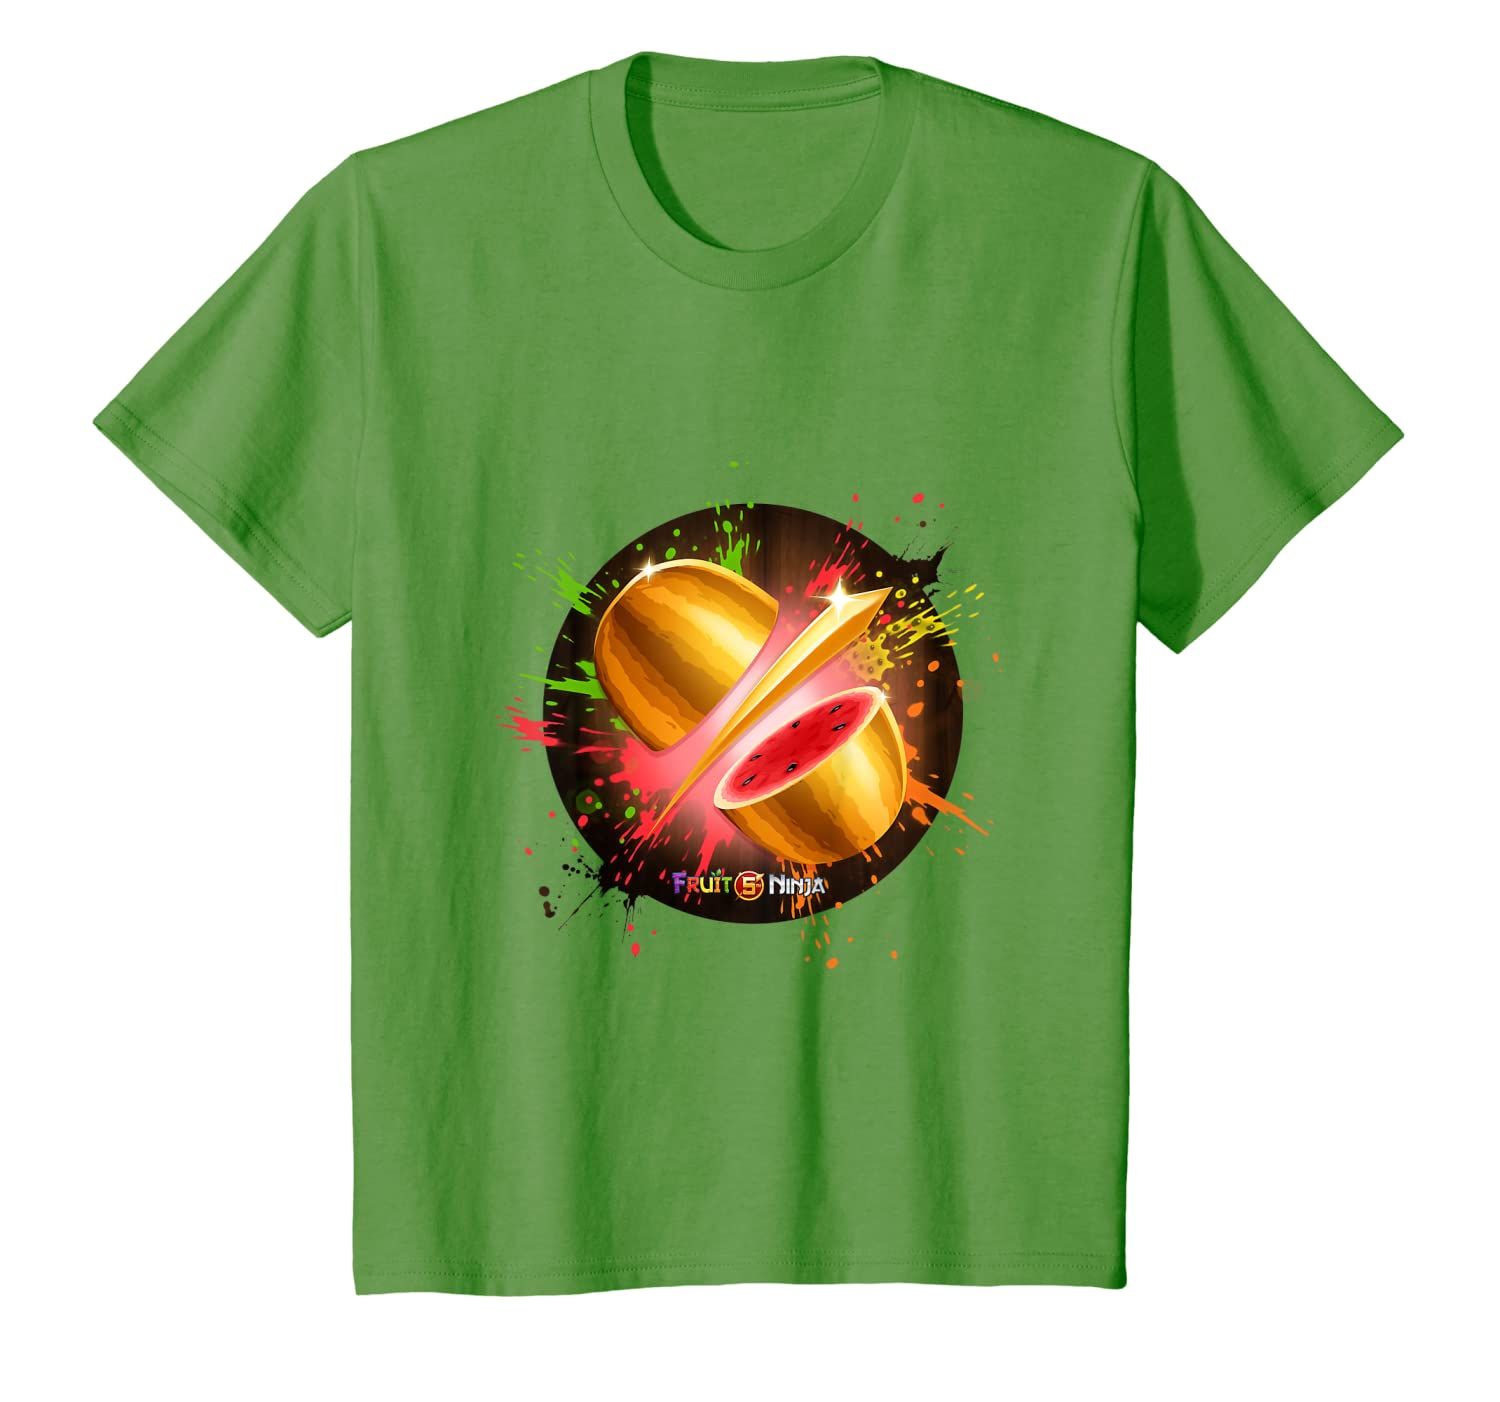 Fruit Ninja -5 Year Anniversary T-Shirt